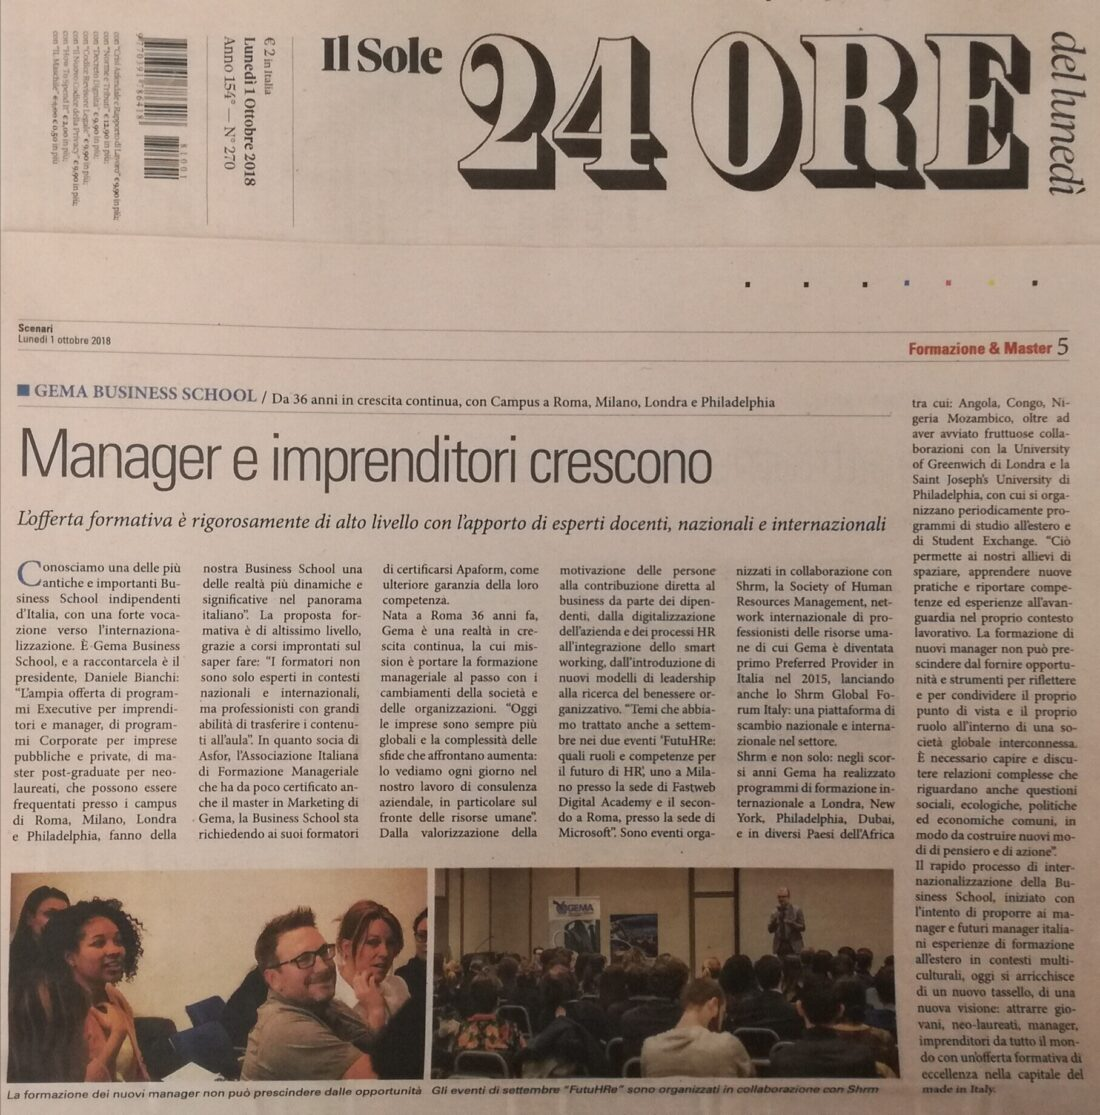 GEMA Business School: sul Sole 24 Ore l'intervista al presidente Daniele Bianchi